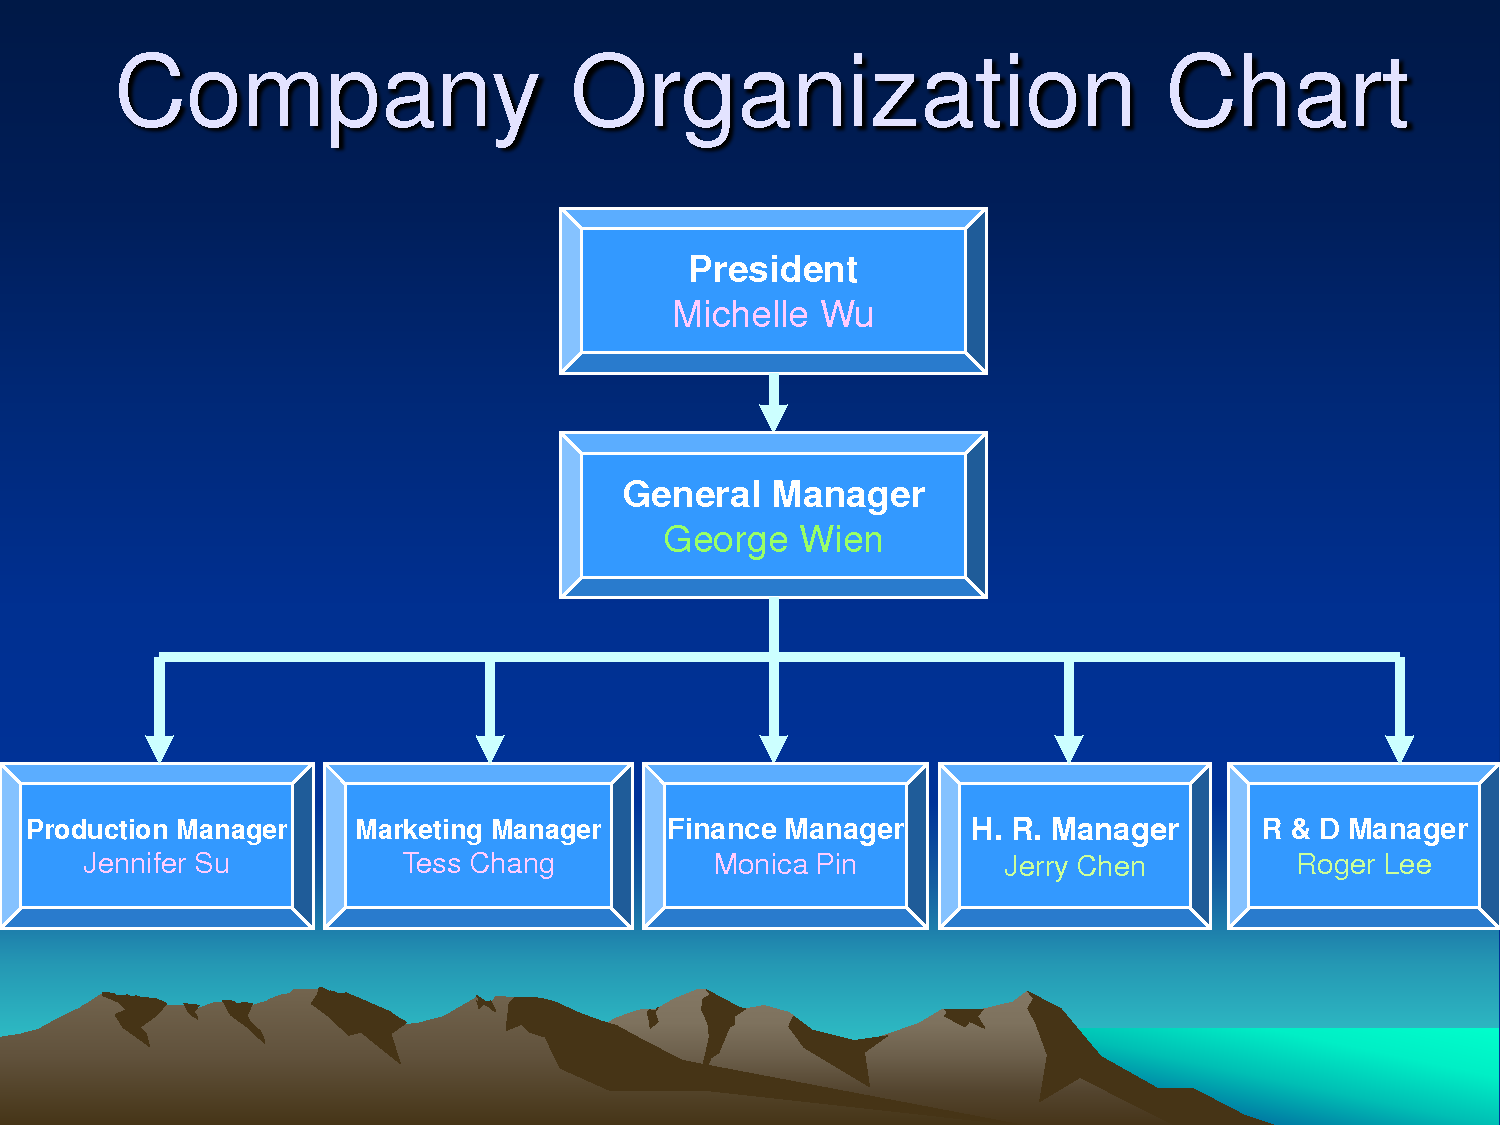 corporate business structure Organizational structure refers to the way that an organization arranges people and jobs so that its work can be performed and its goals can be met when a work group is very small and face-to-face communication is frequent, formal structure may be unnecessary, but in a larger organization decisions.